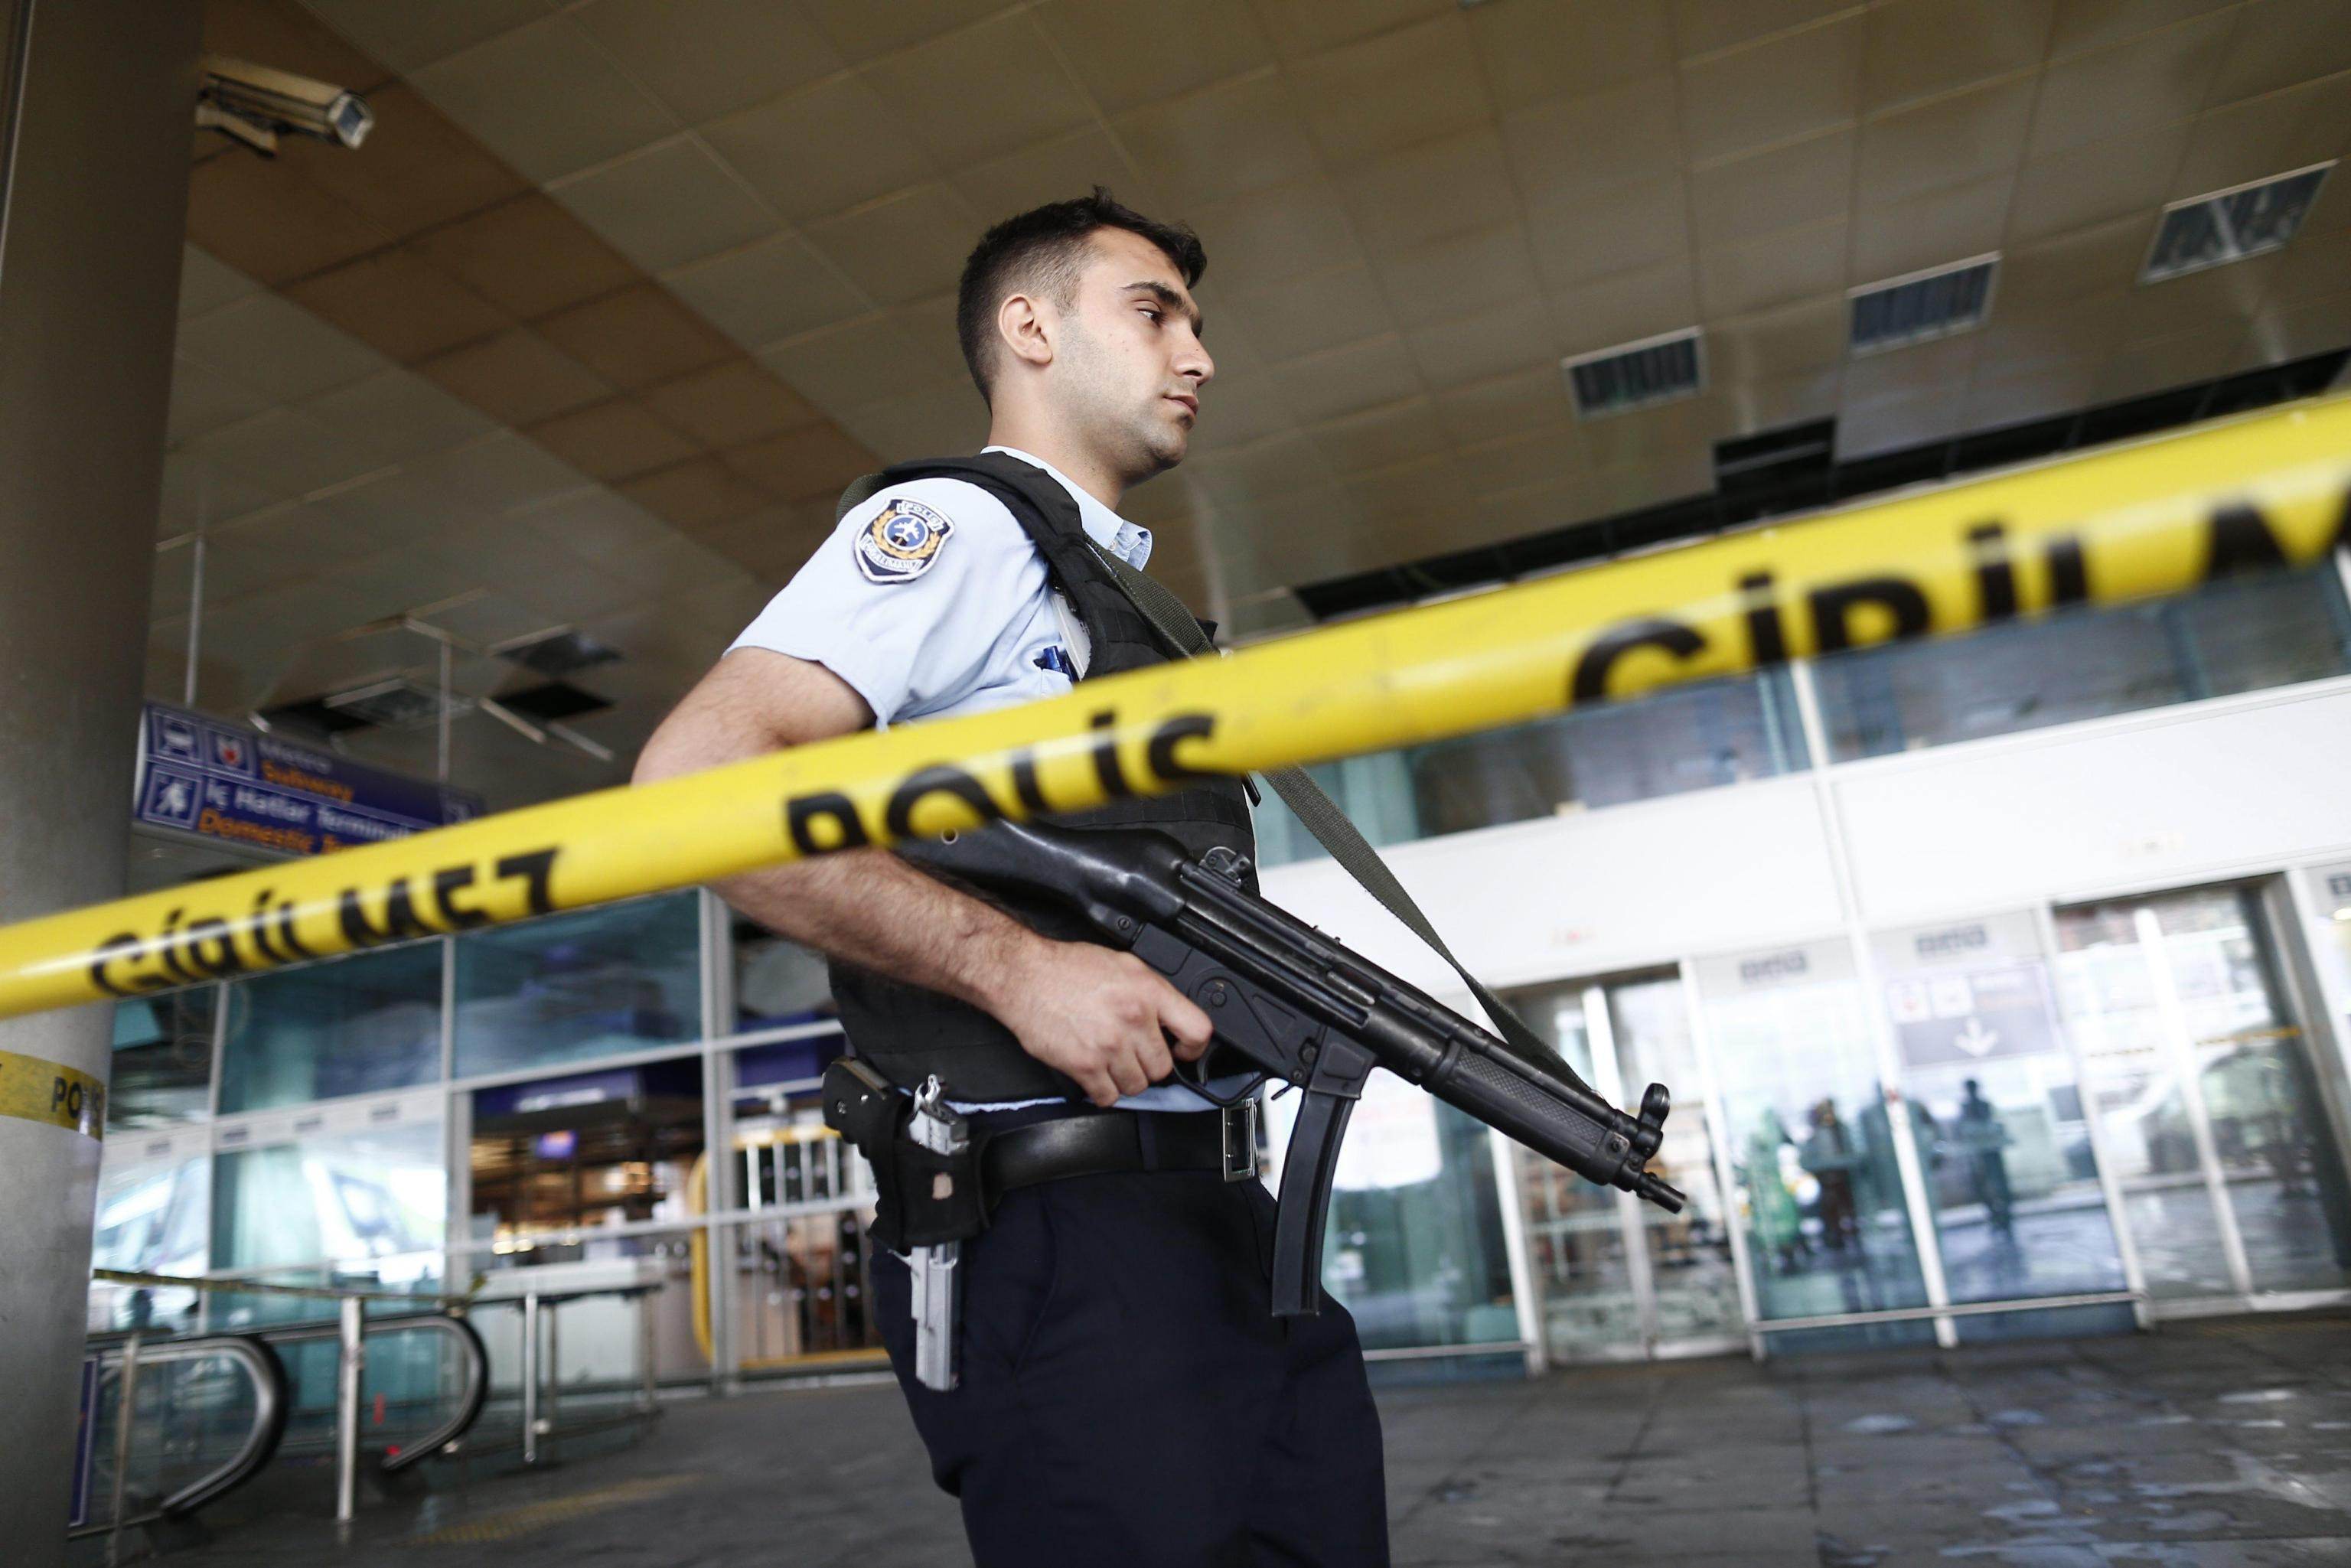 epa05397160 An armed Turkish policeman patrols behind a police line after multiple suicide bomb attacks at Ataturk international airport in Istanbul, Turkey, 29 June 2016. At least 36 people were killed and more than 140 others were wounded in three separate gun and bomb attack outside and inside the terminal of Istanbul's Ataturk international airport on 28 June, media reported quoting officials. The attacks have been linked to either the so-called Islamic State (IS or ISIS) militant group or Kurdish separatists, media added. EPA/SEDAT SUNA